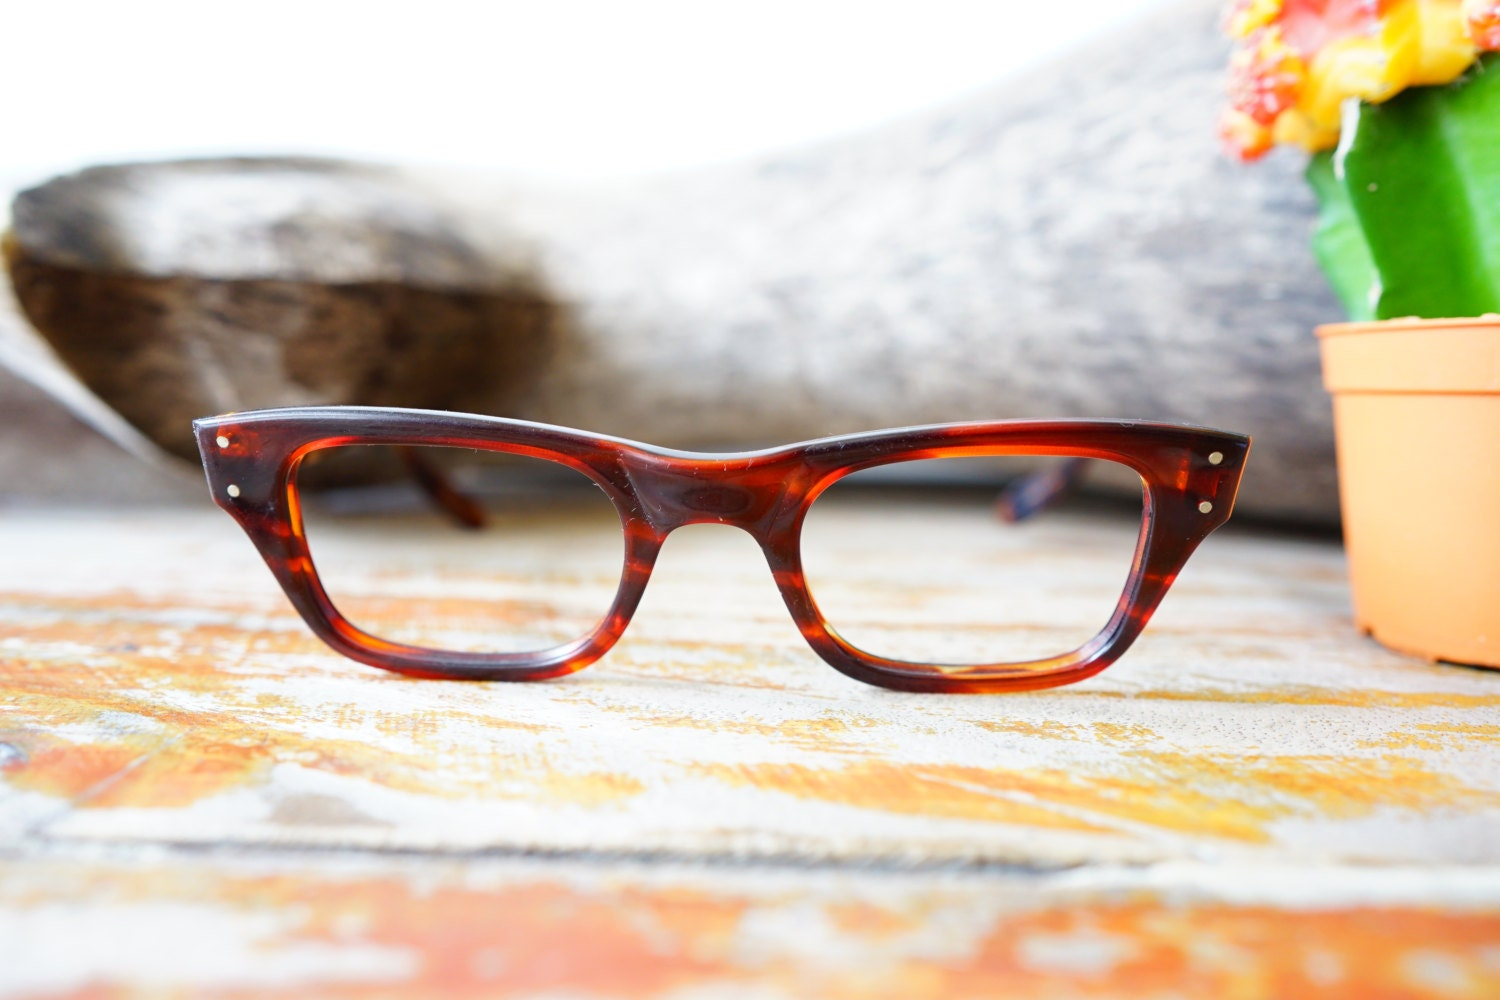 52947560ff Vintage Eyeglass 1950 s Frames By Bausch And Lomb Nos Made In Usa 46-22  Great